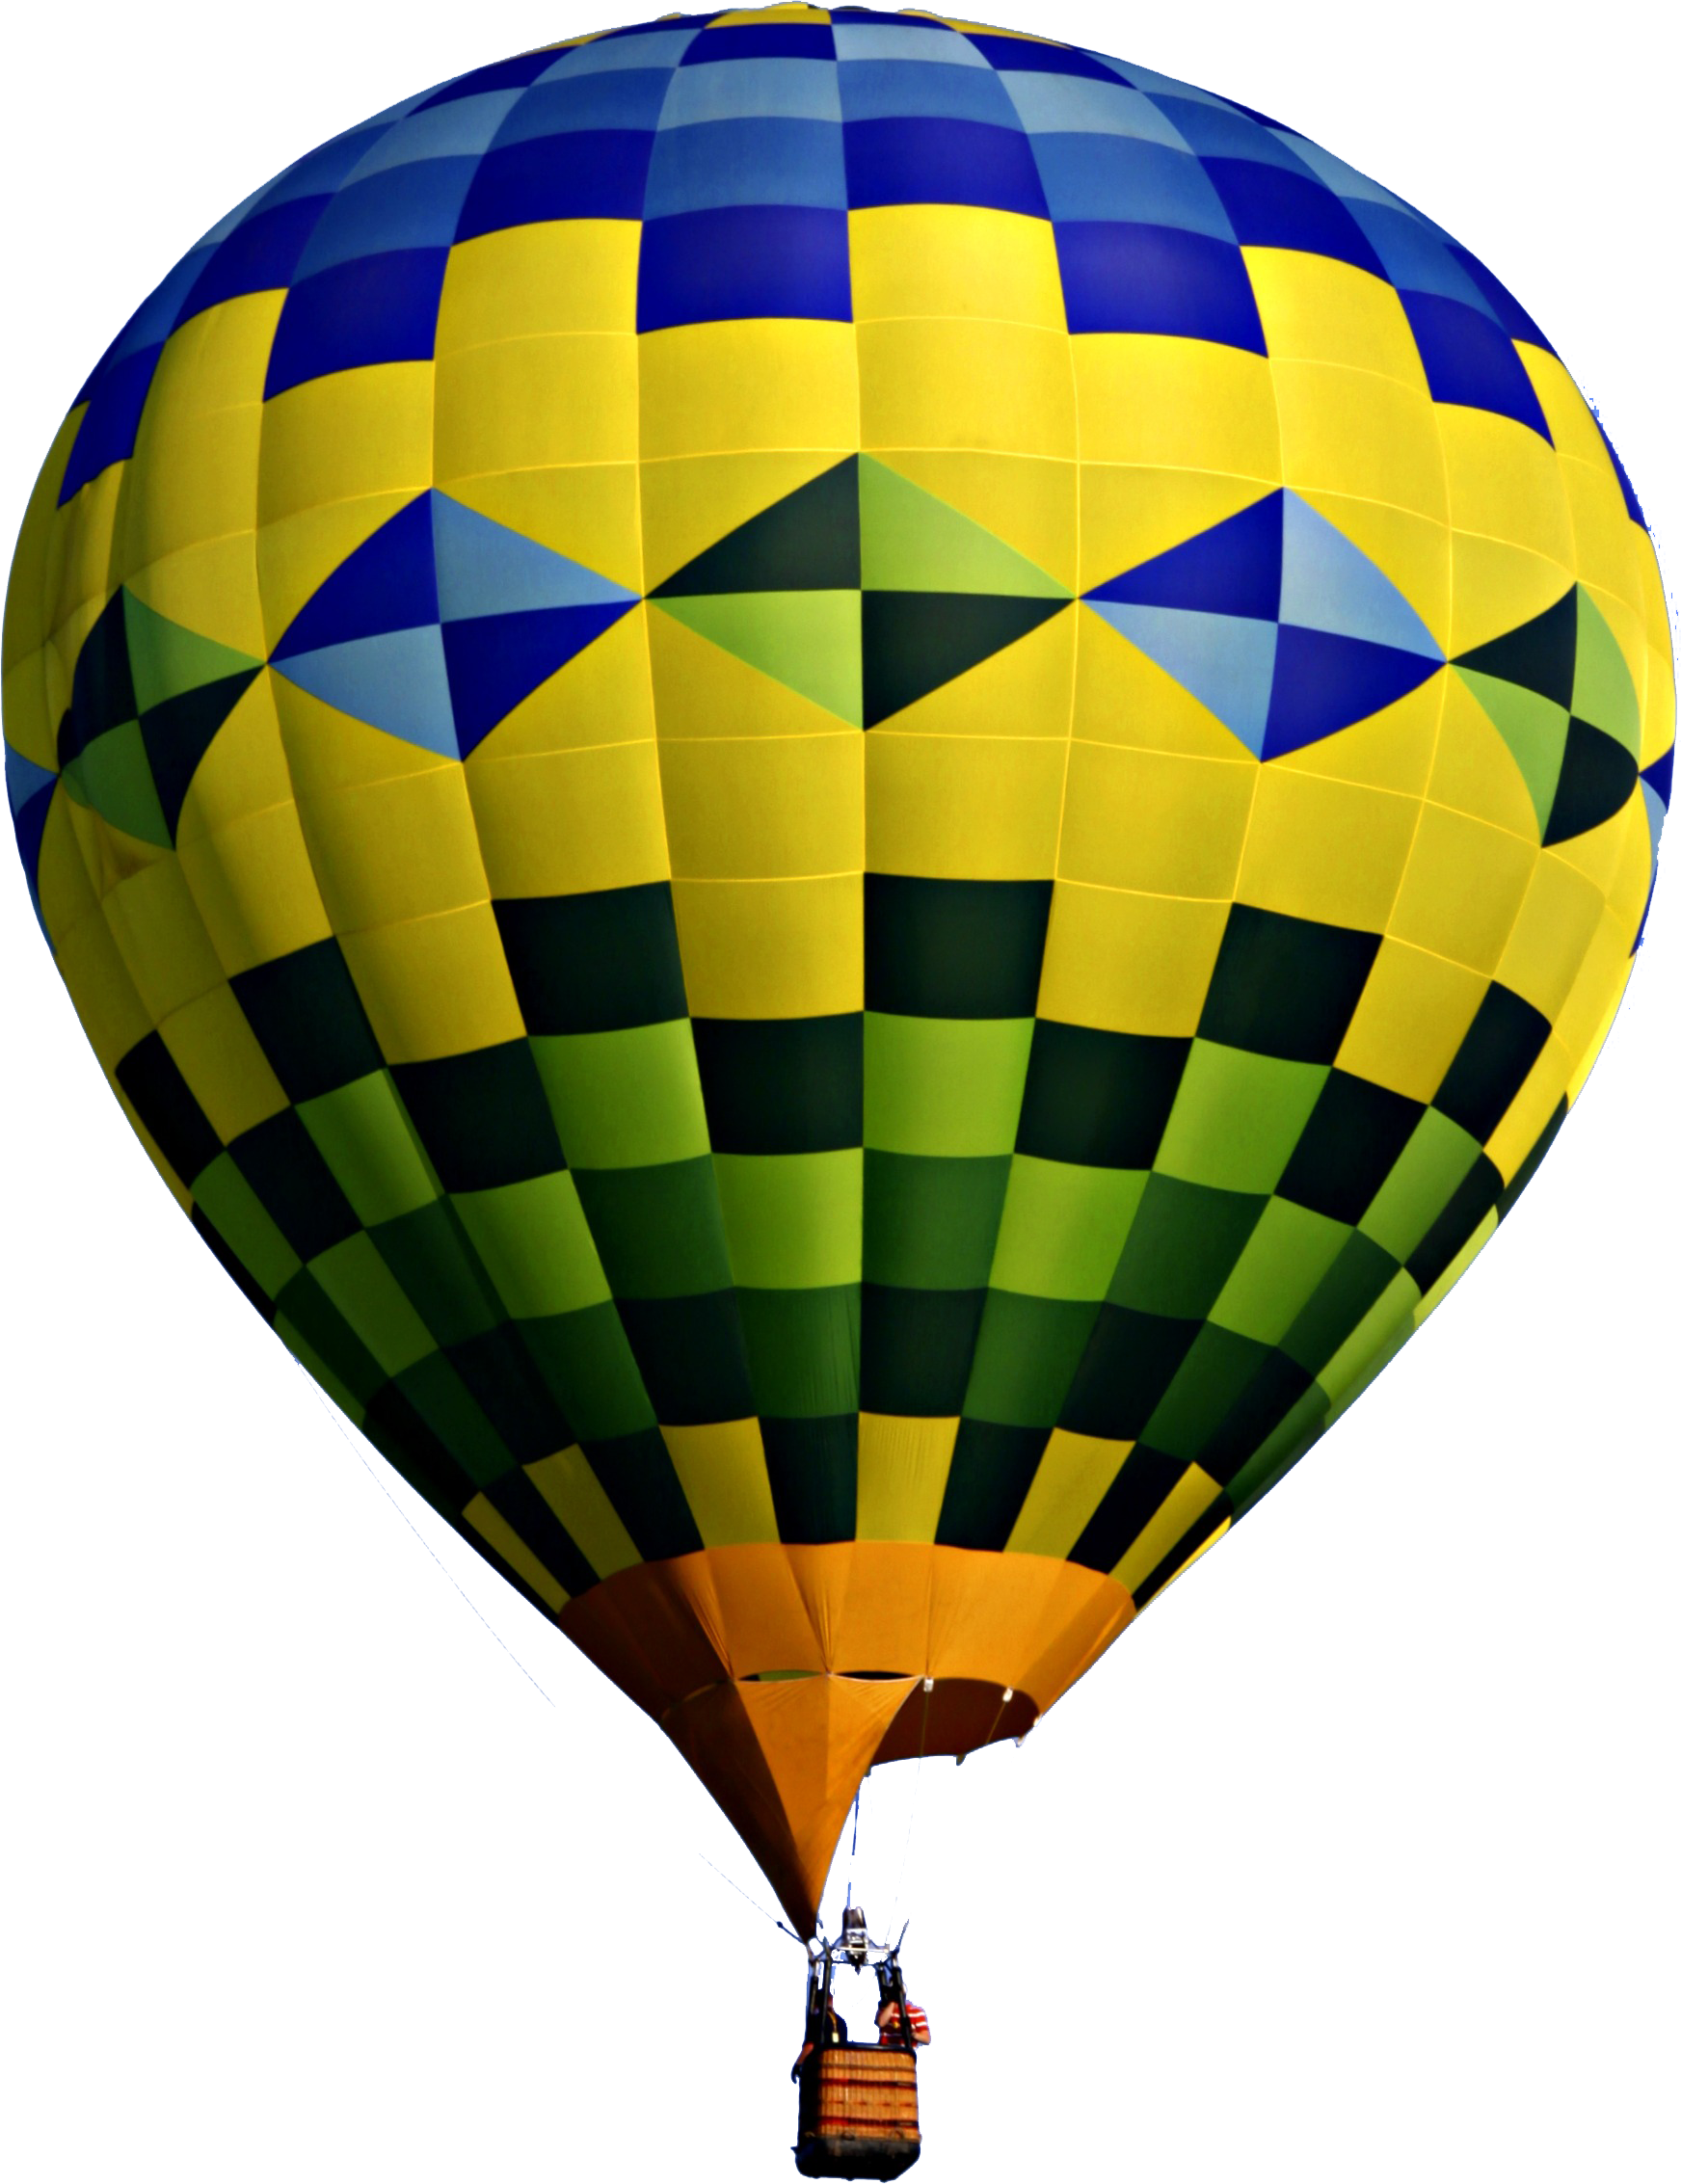 Image purepng free cc. Hot air balloon png transparent background picture library library